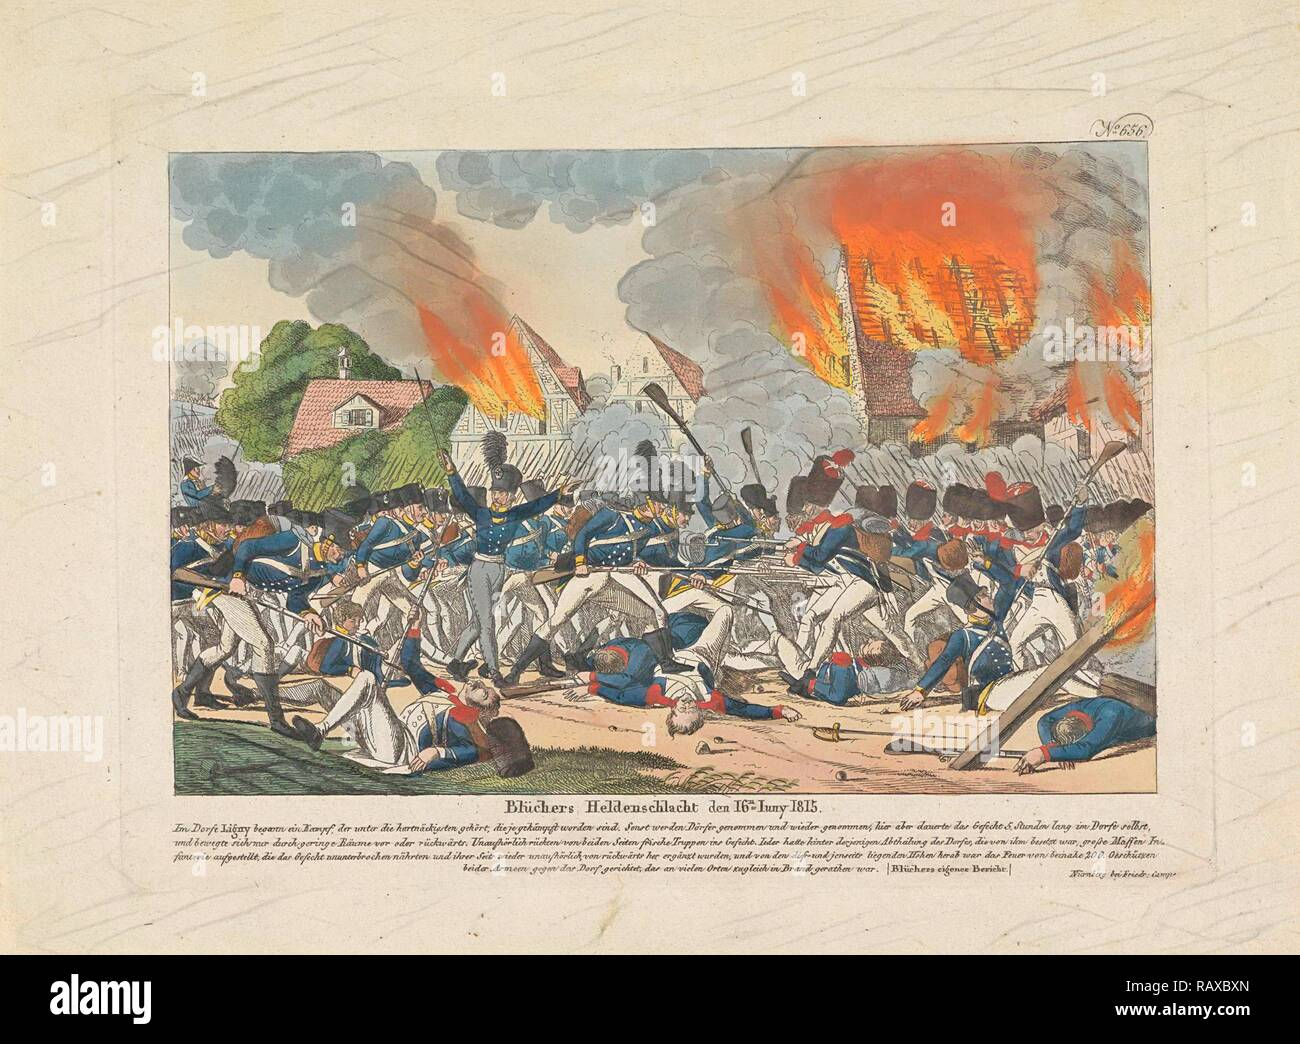 Battle of Ligny, 1815, Belgium, Anonymous, Friedrich Campe, 1815. Reimagined by Gibon. Classic art with a modern reimagined - Stock Image